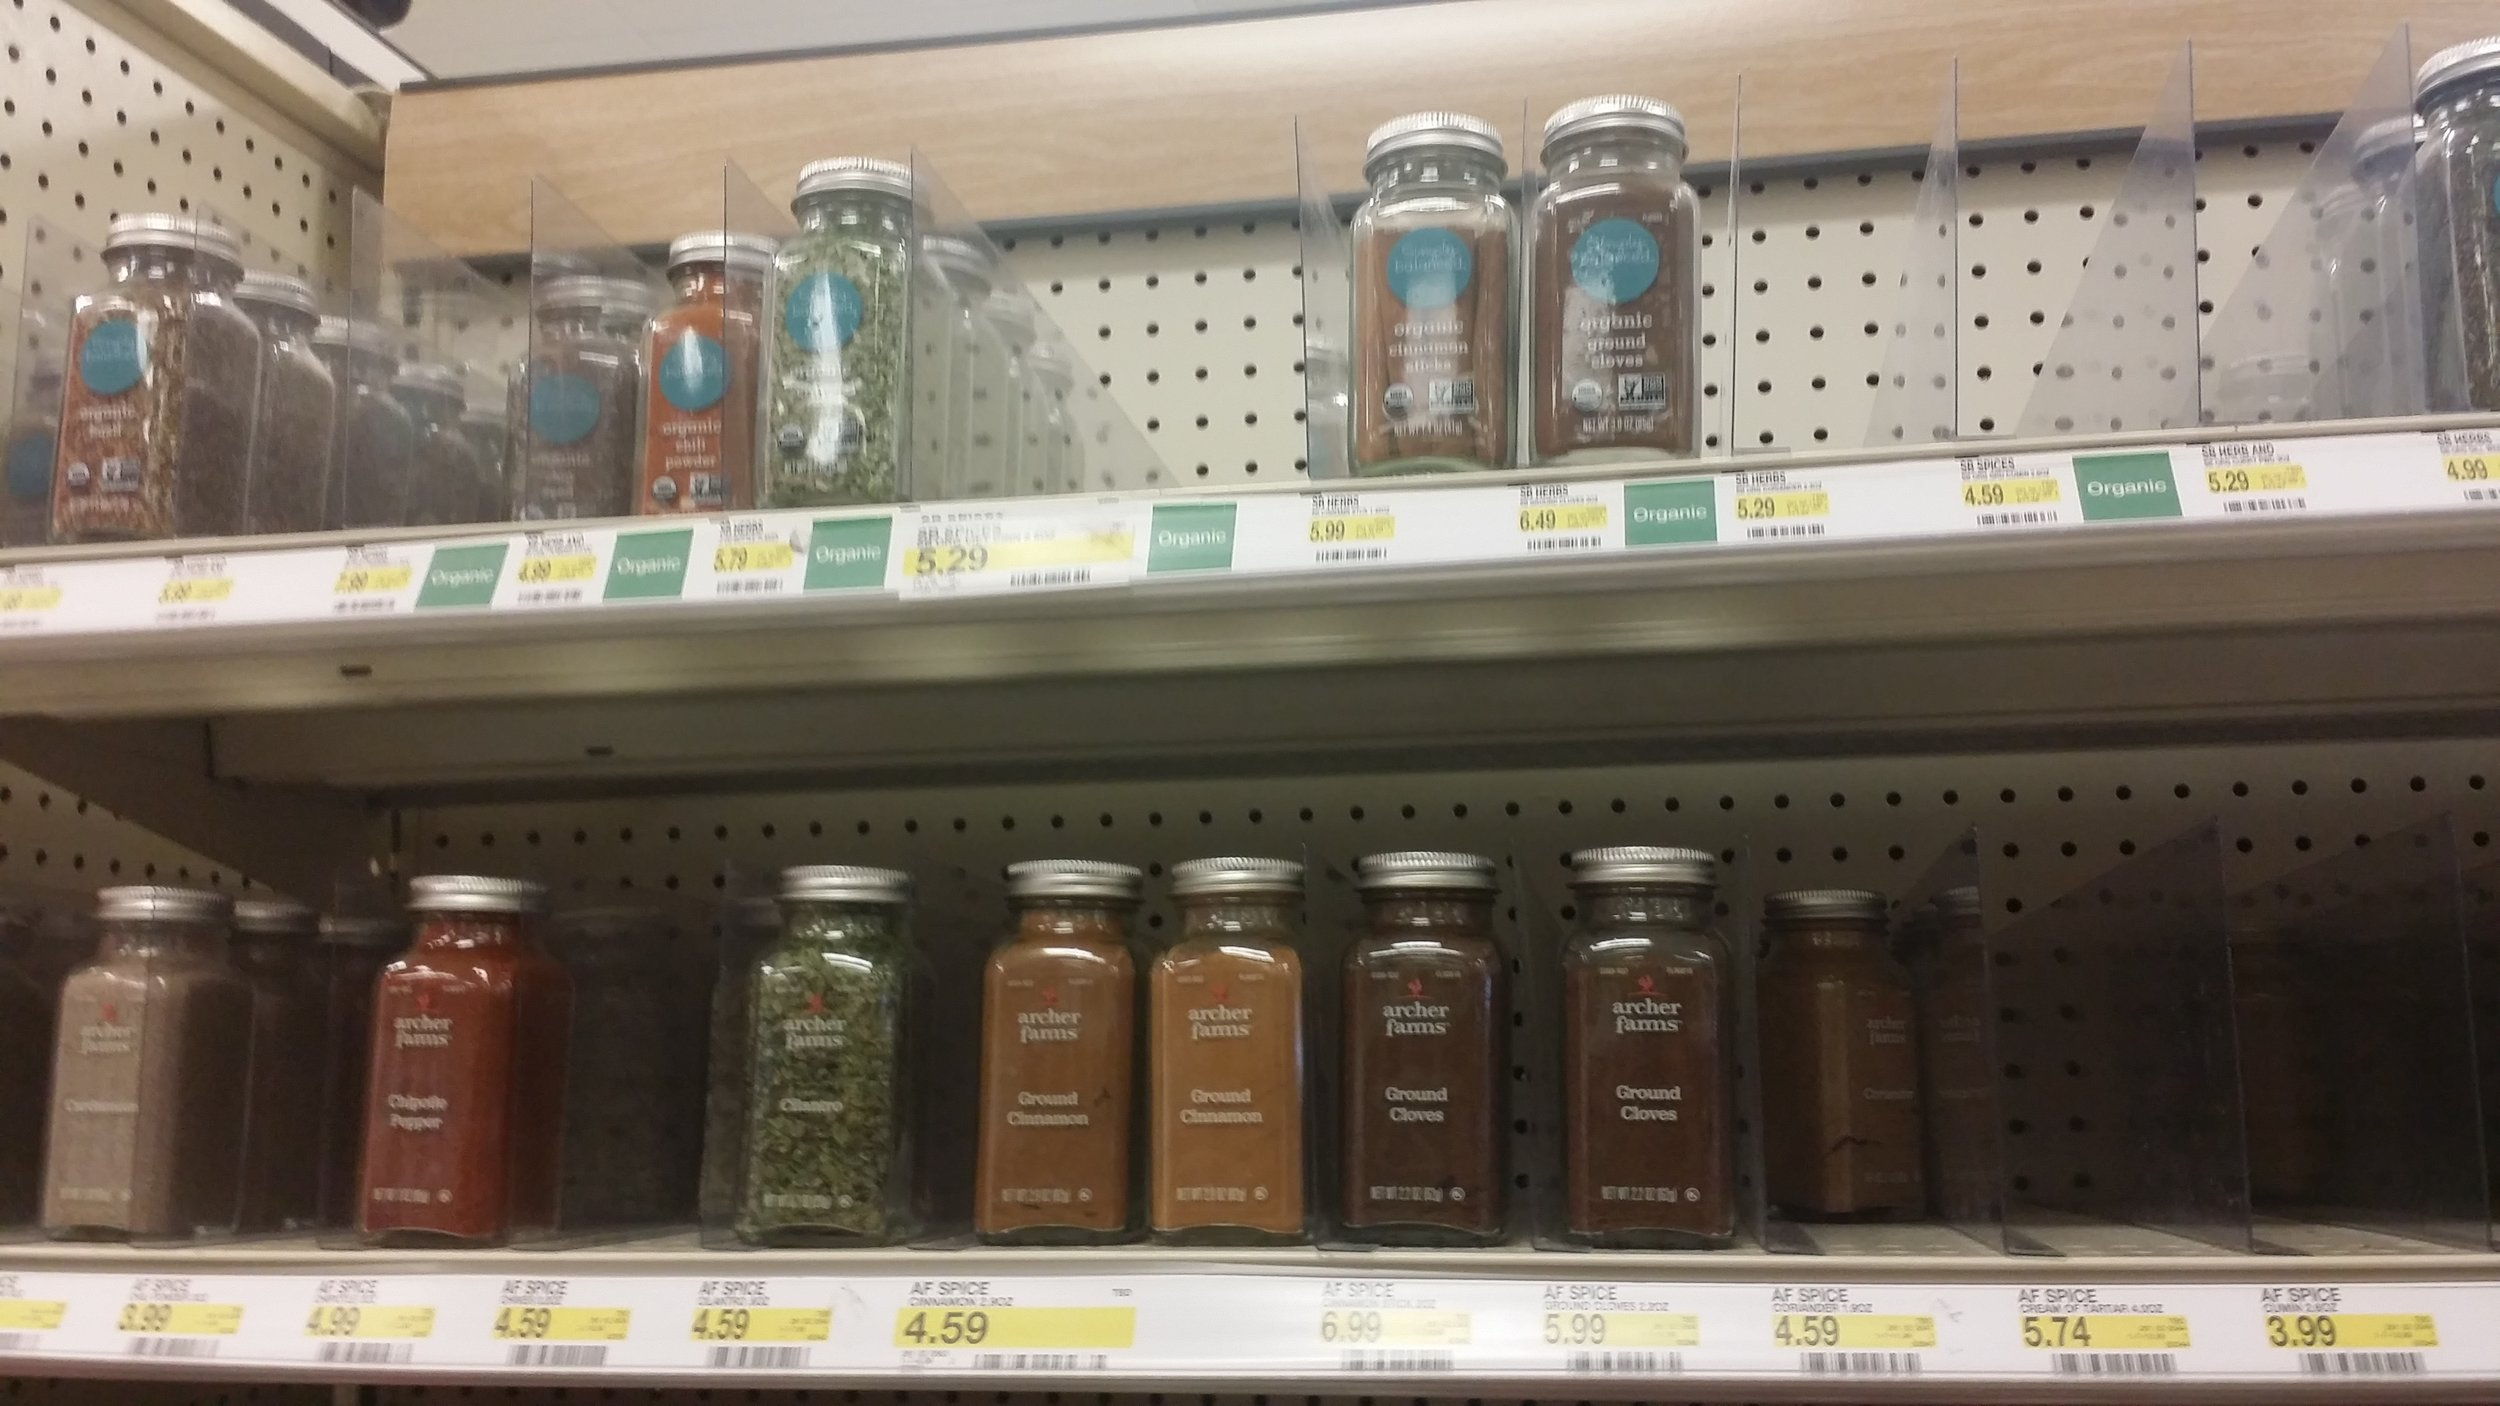 Organic spices that come in glass jars.